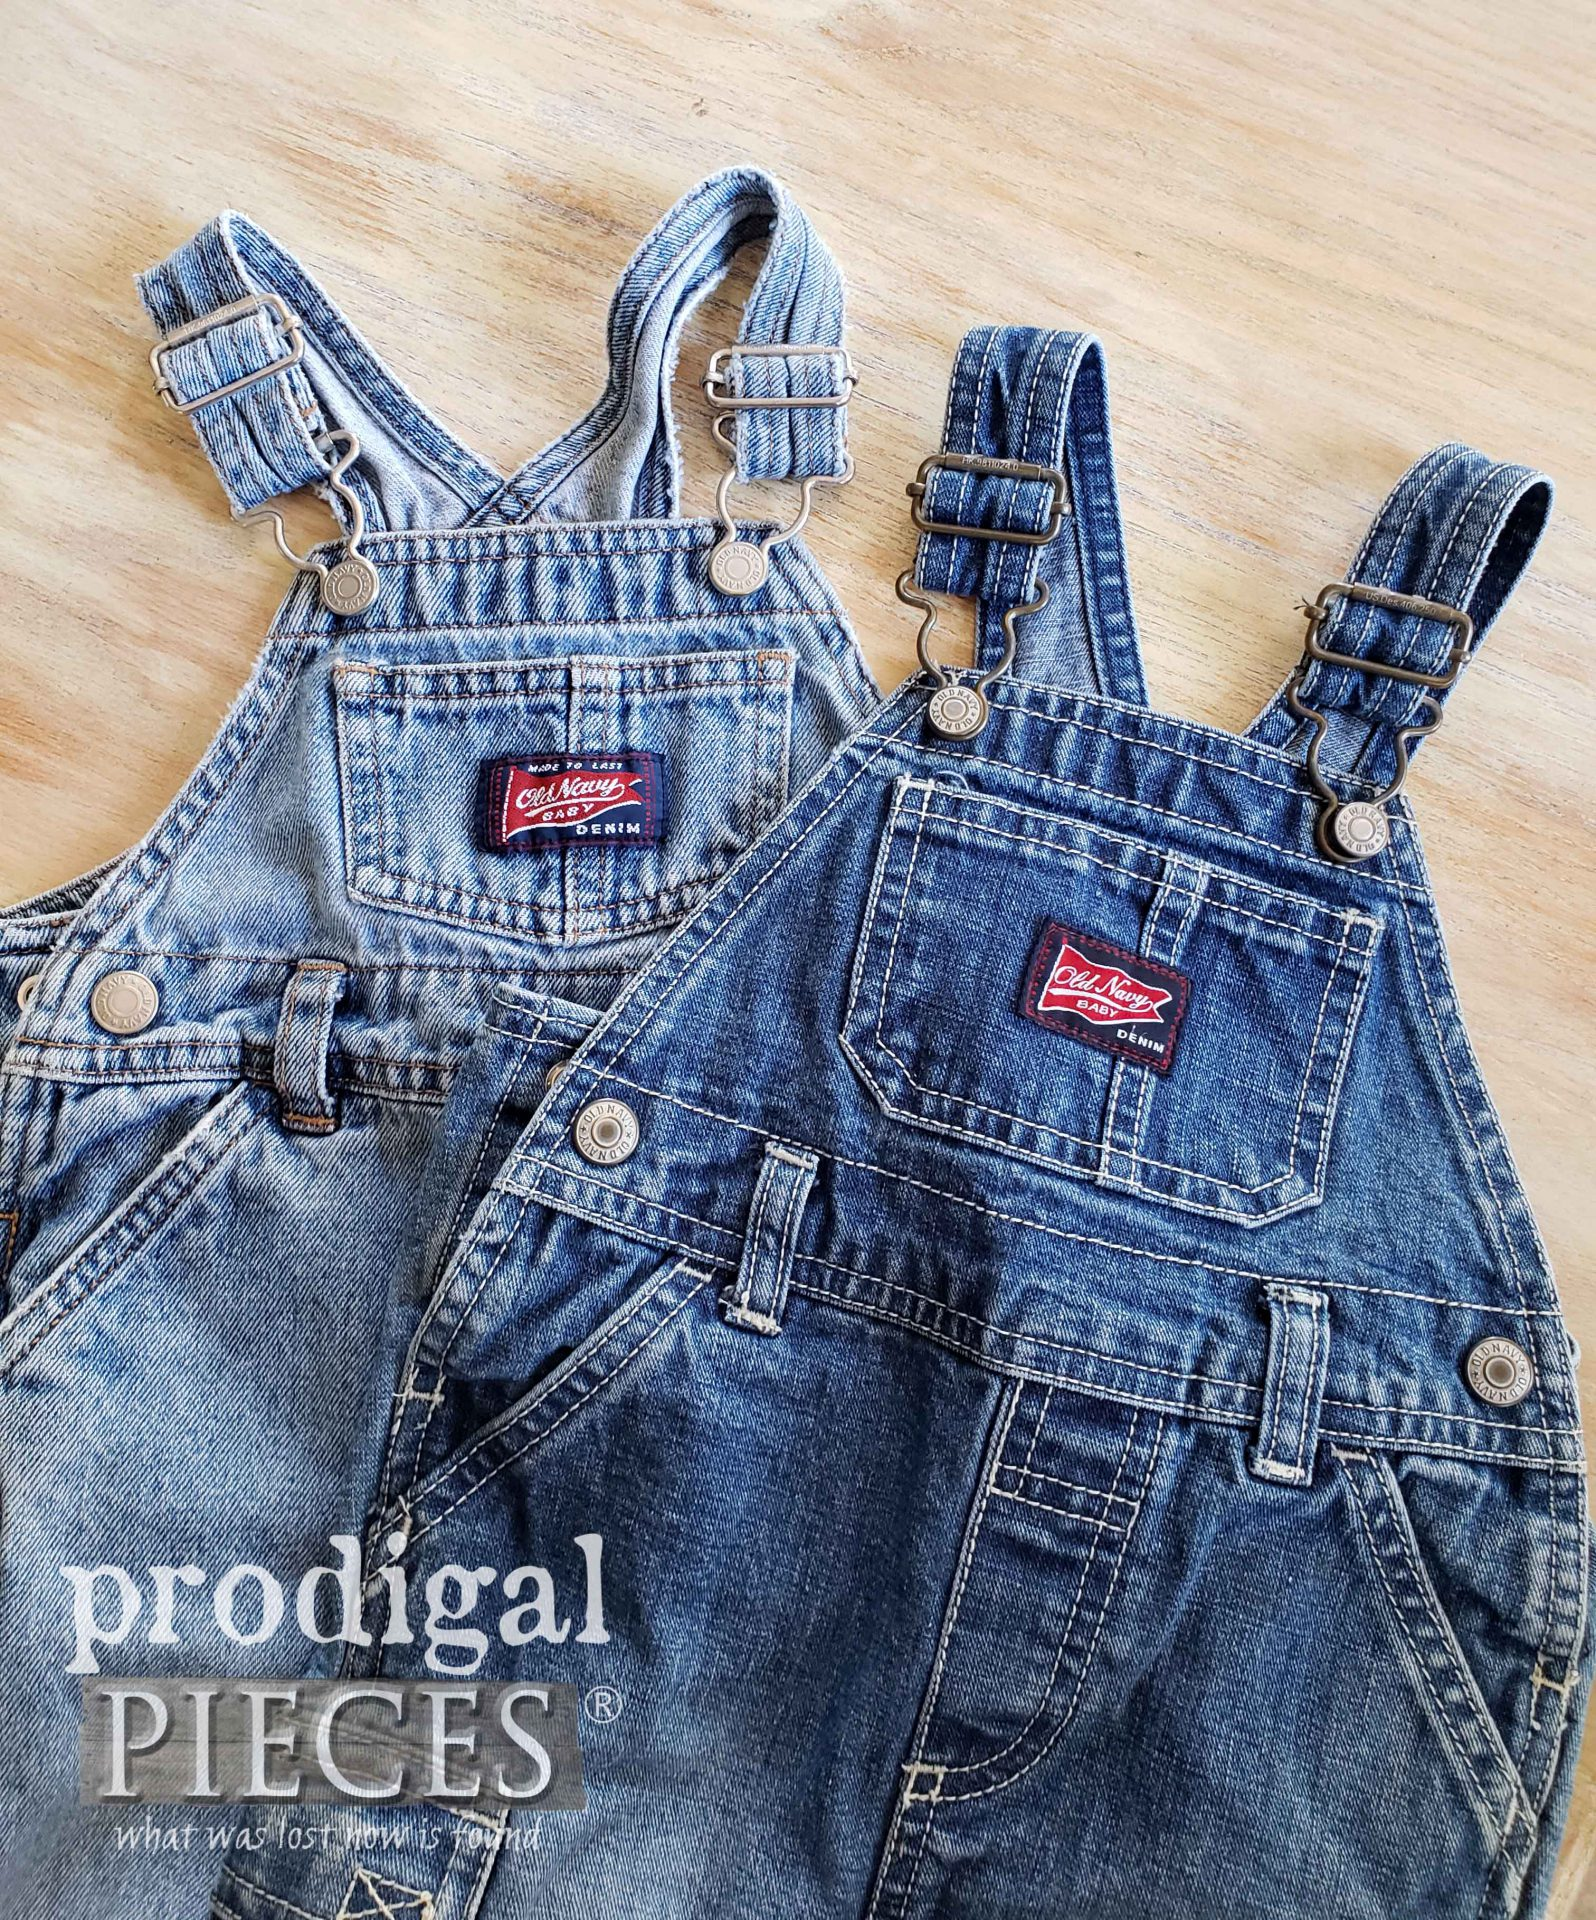 Jean Baby Bib Overalls for Refashion by Prodigal Pieces | prodigalpieces.com #prodigalpieces